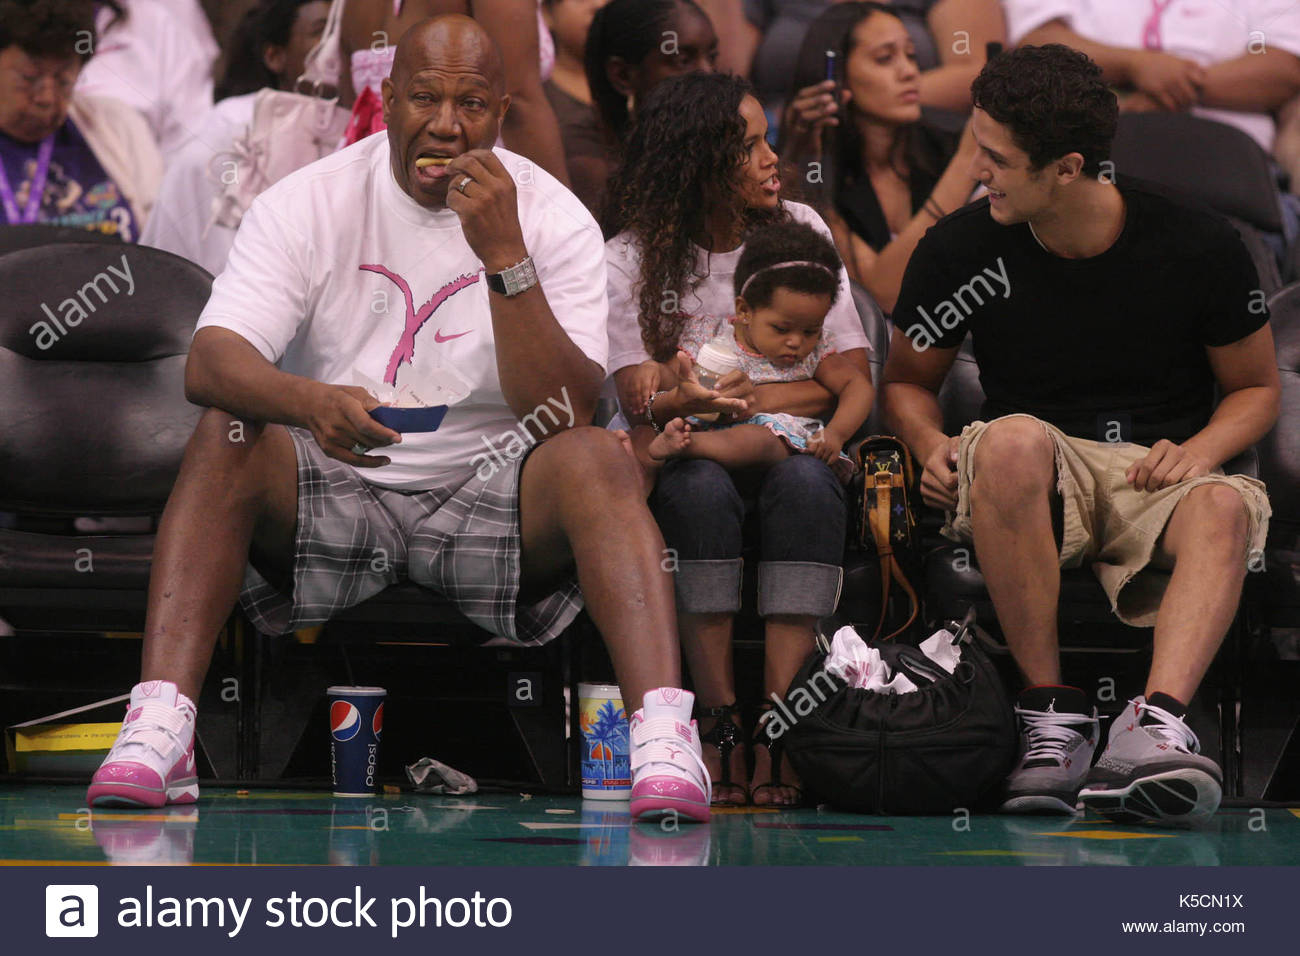 Celebrities attend Los Angeles Sparks game. Celebrities attend the Los Angeles Sparks Game in Los Angeles, Ca. - Stock Image